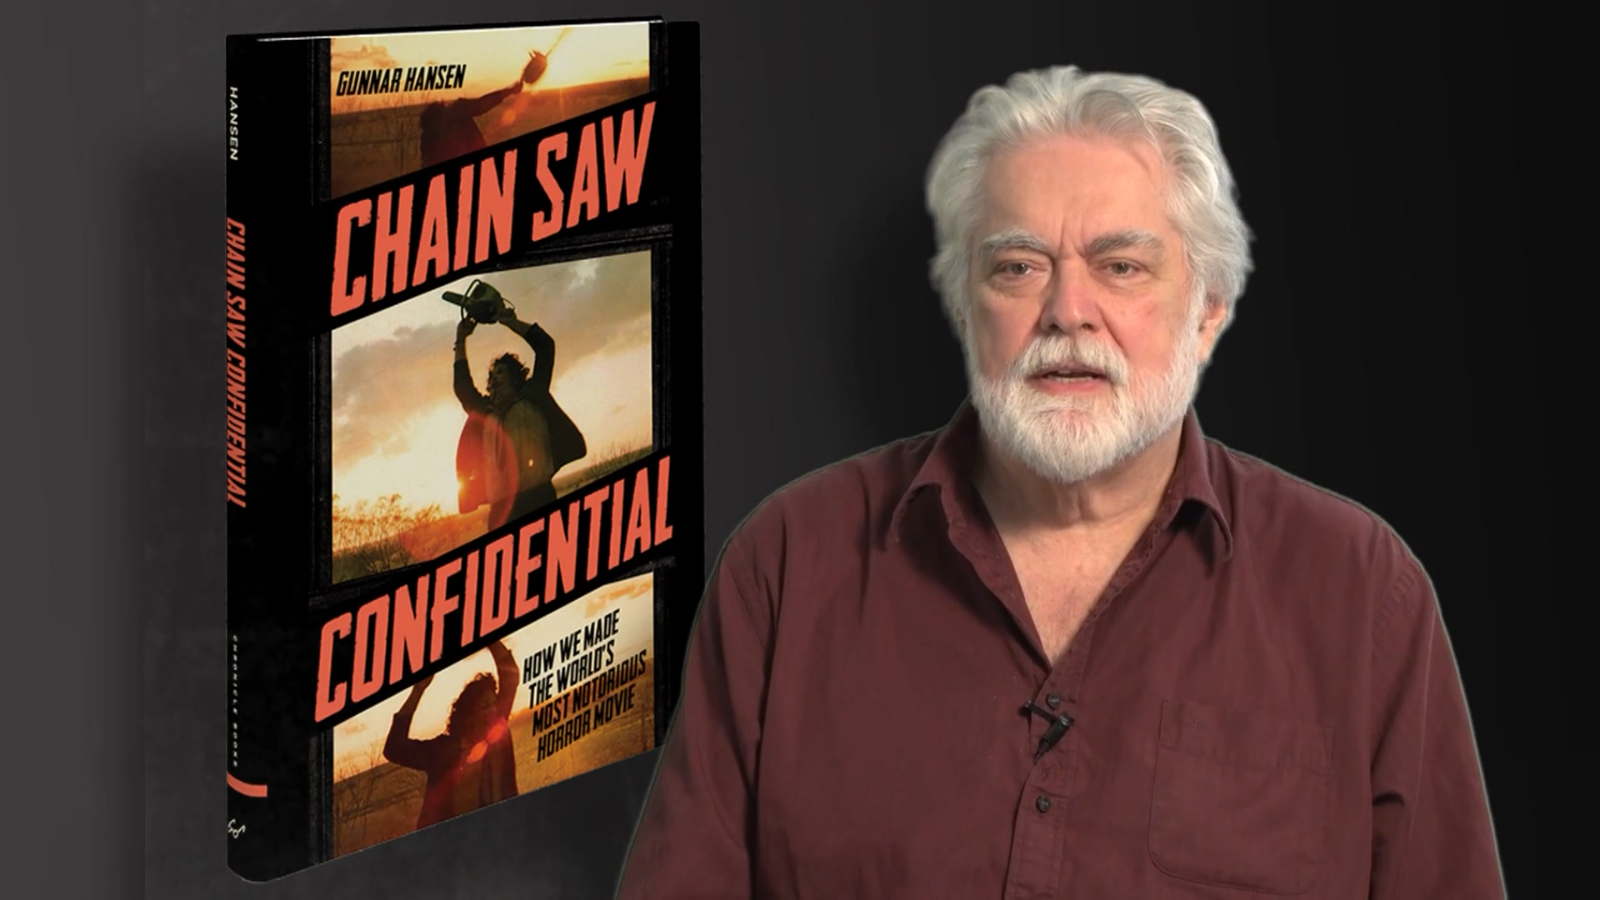 Chainsaw Confidential by Gunnar Hansen